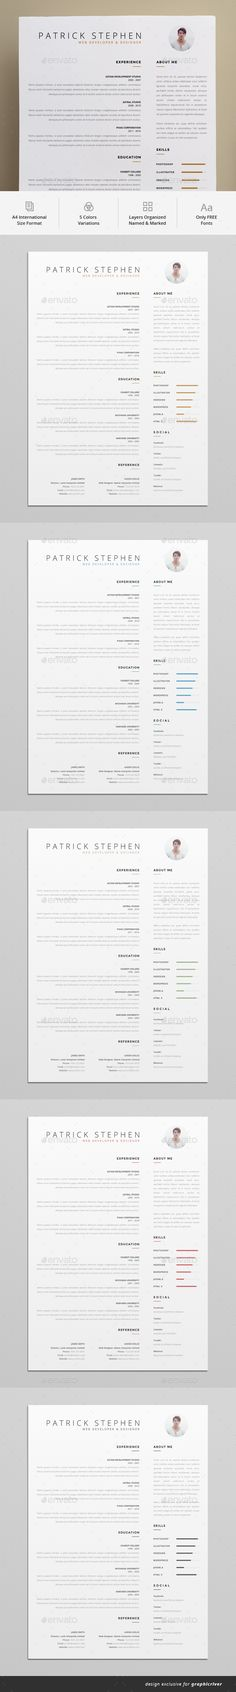 20 Best And Worst Fonts To Use On Your Resume Fonts, Resume - fonts for resume